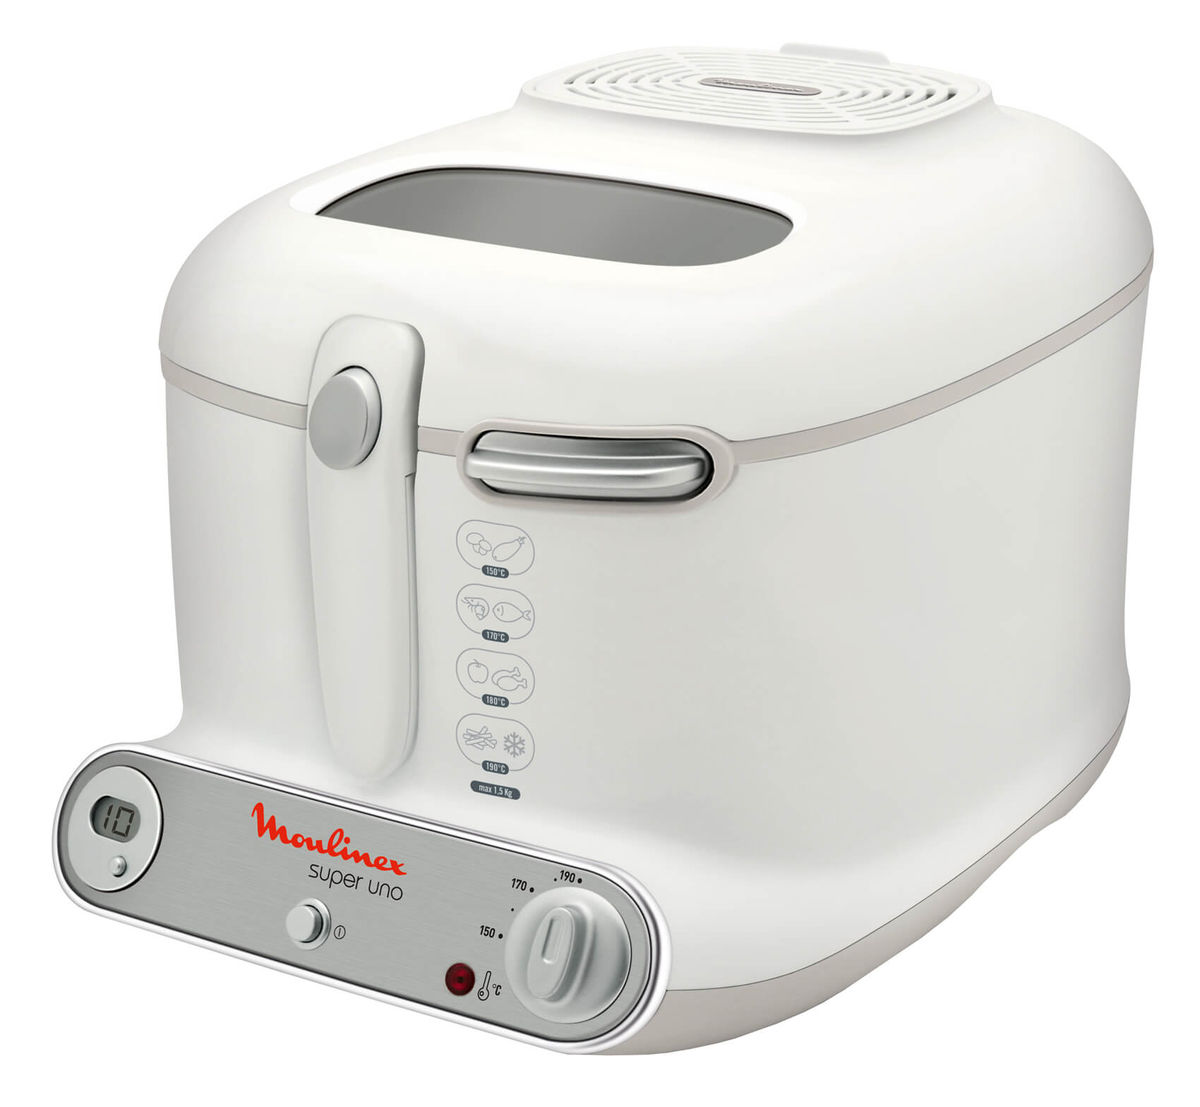 Image of Moulinex AM3021 Super Uno Friteuse